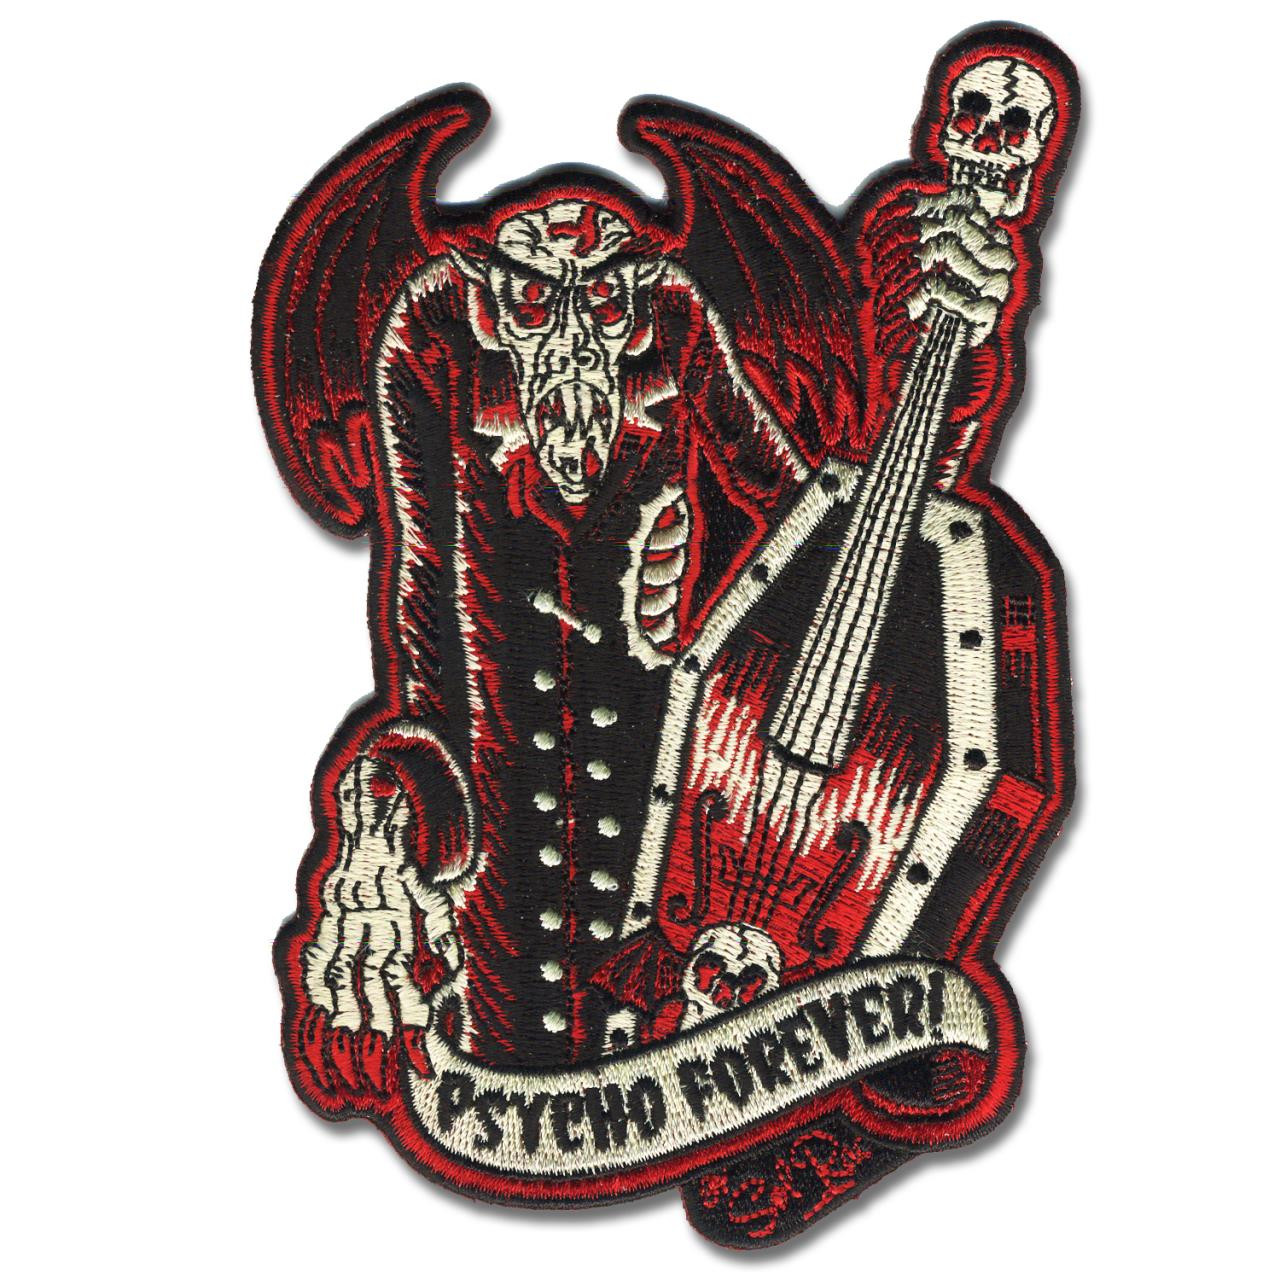 Psycho Forever Patch* -